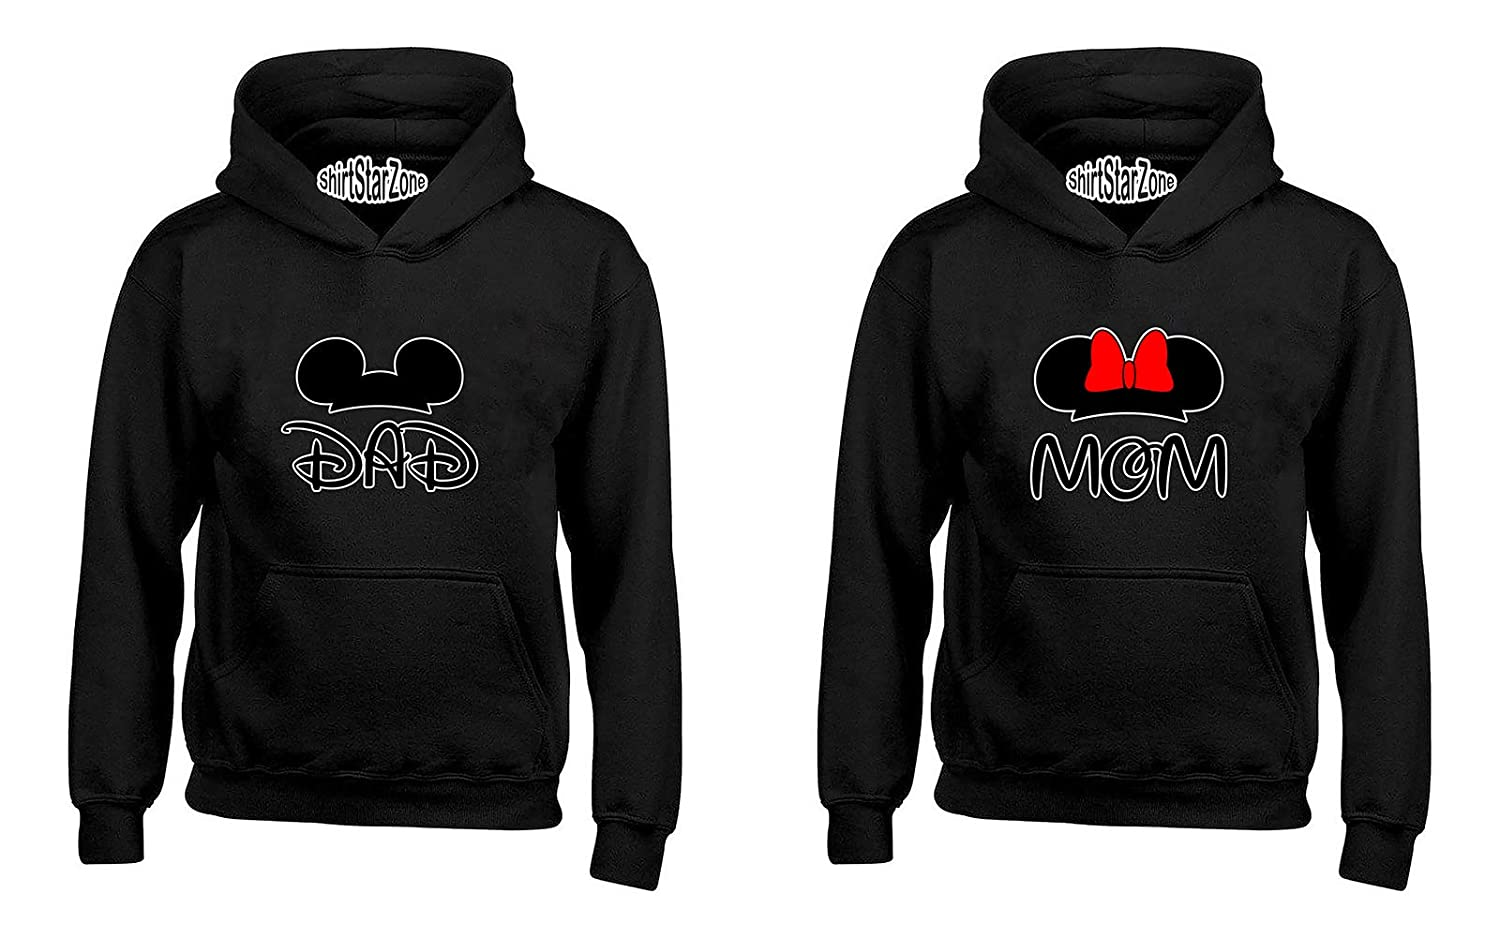 YSM Cartoon Character Dad and Mom Matching Couples Hoodies